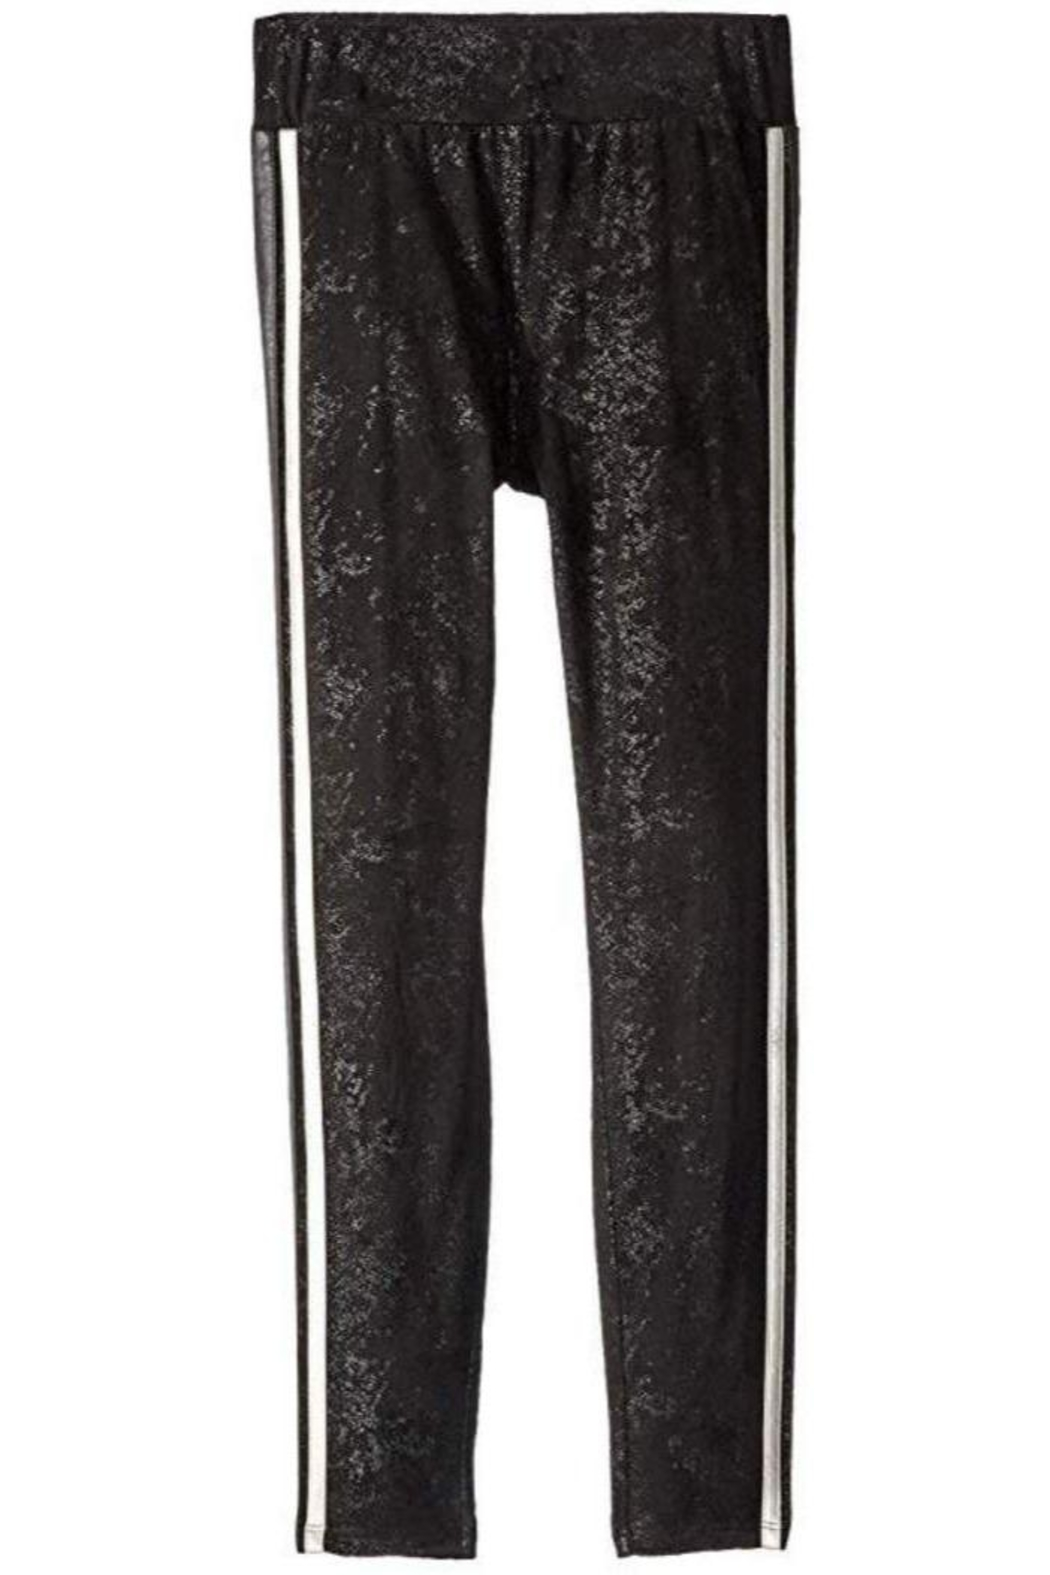 Ella Moss Metallic Trim Leggings - Main Image